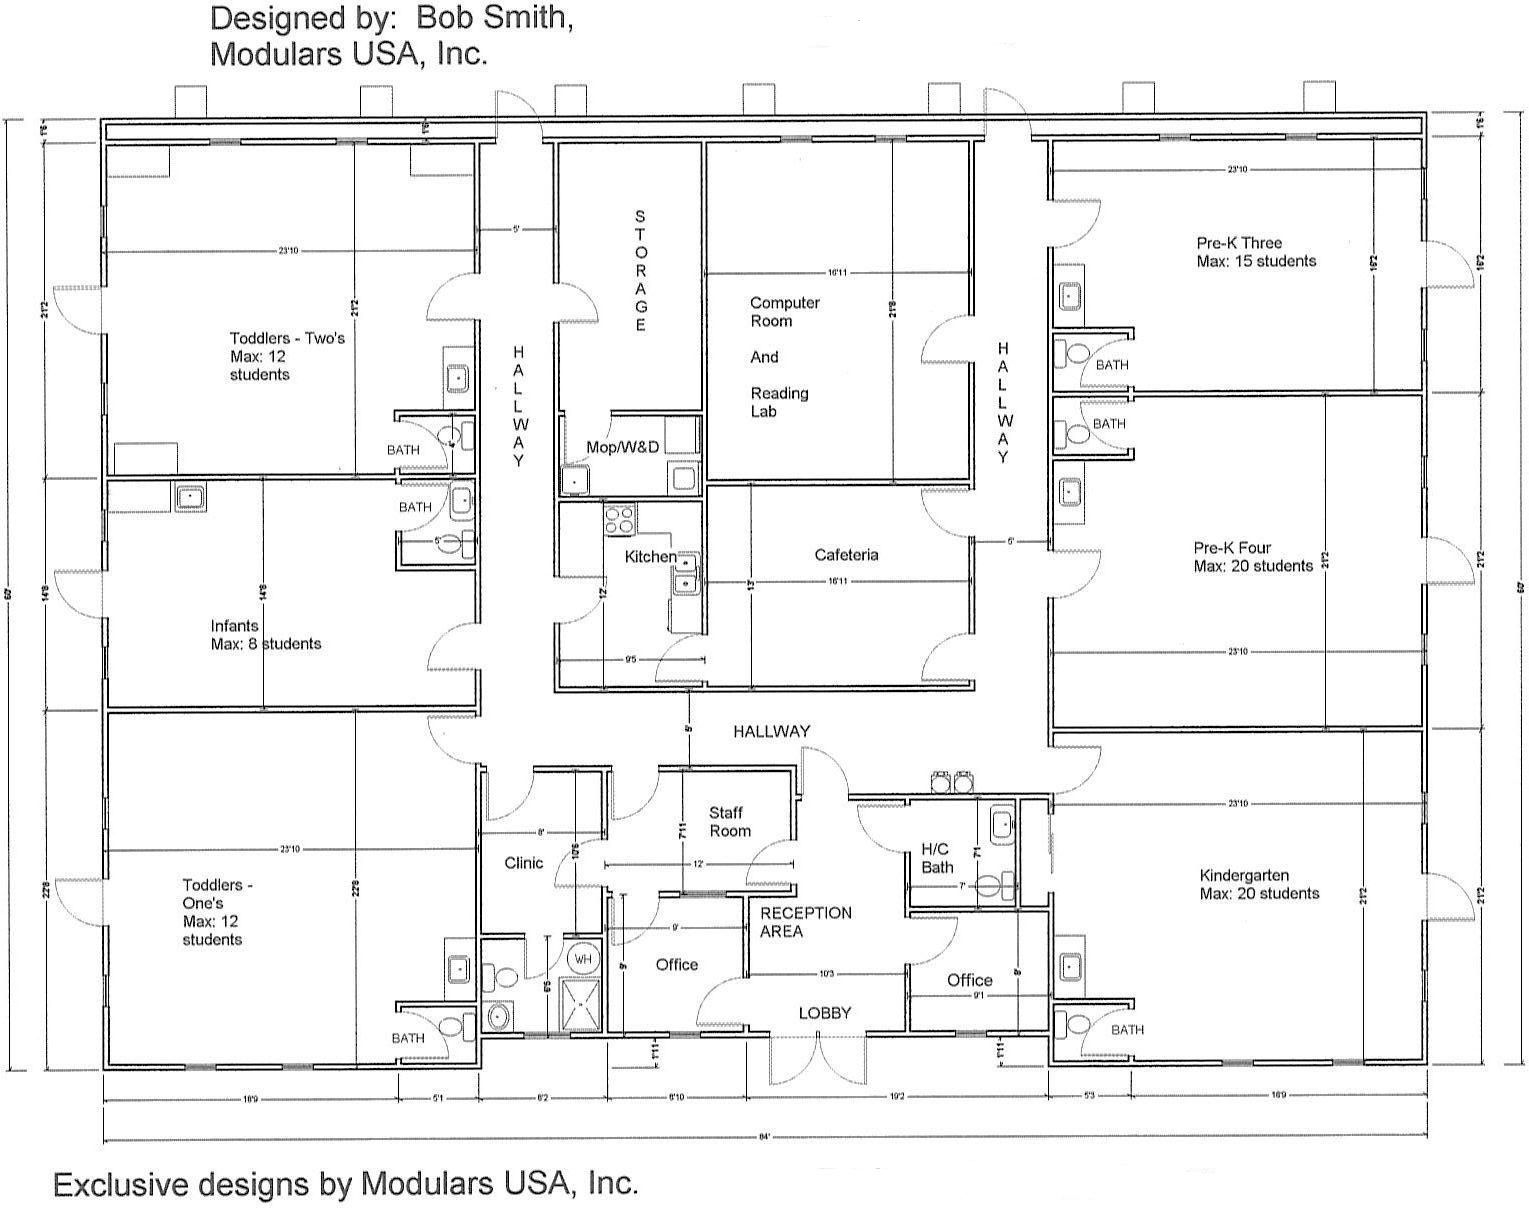 Daycare center blueprints floor plan for mindexpander day care daycare center blueprints floor plan for mindexpander day care center malvernweather Image collections